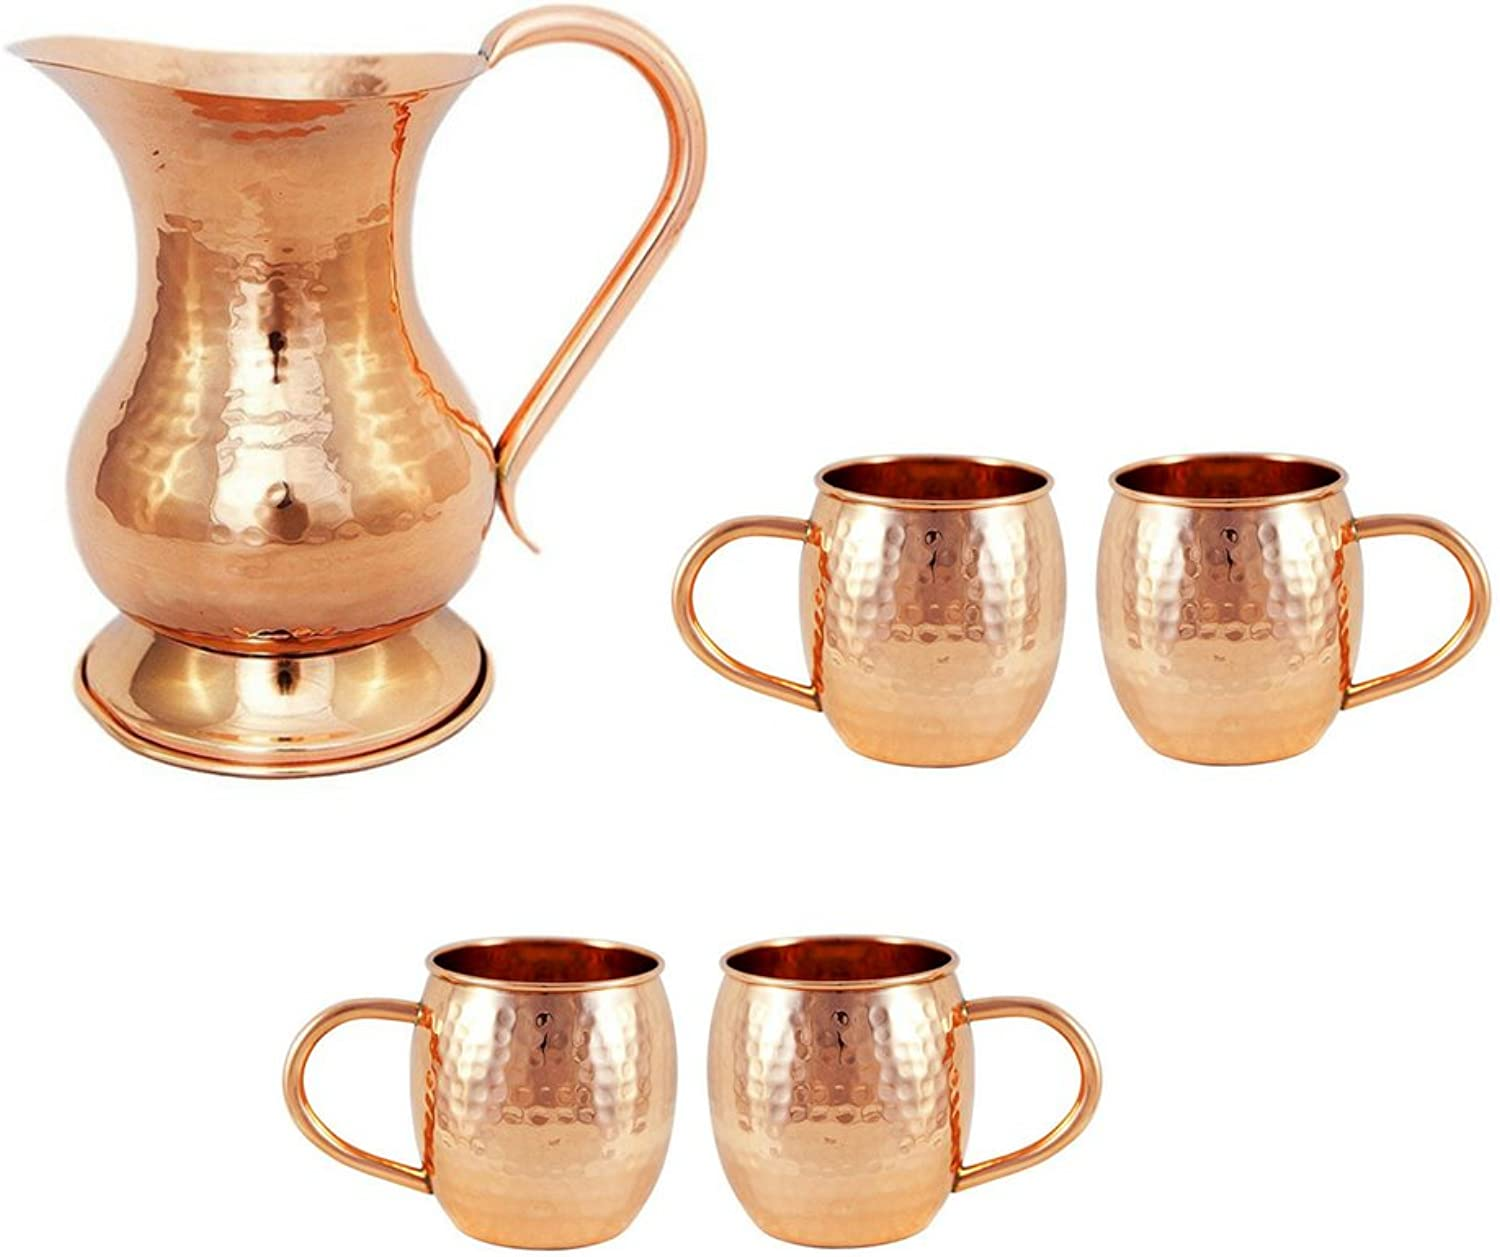 Copper Pitcher & Moscow Mule Mug Set of 4 Cups   Copper Set  Perfect Wedding Summer Gift by Alchemade